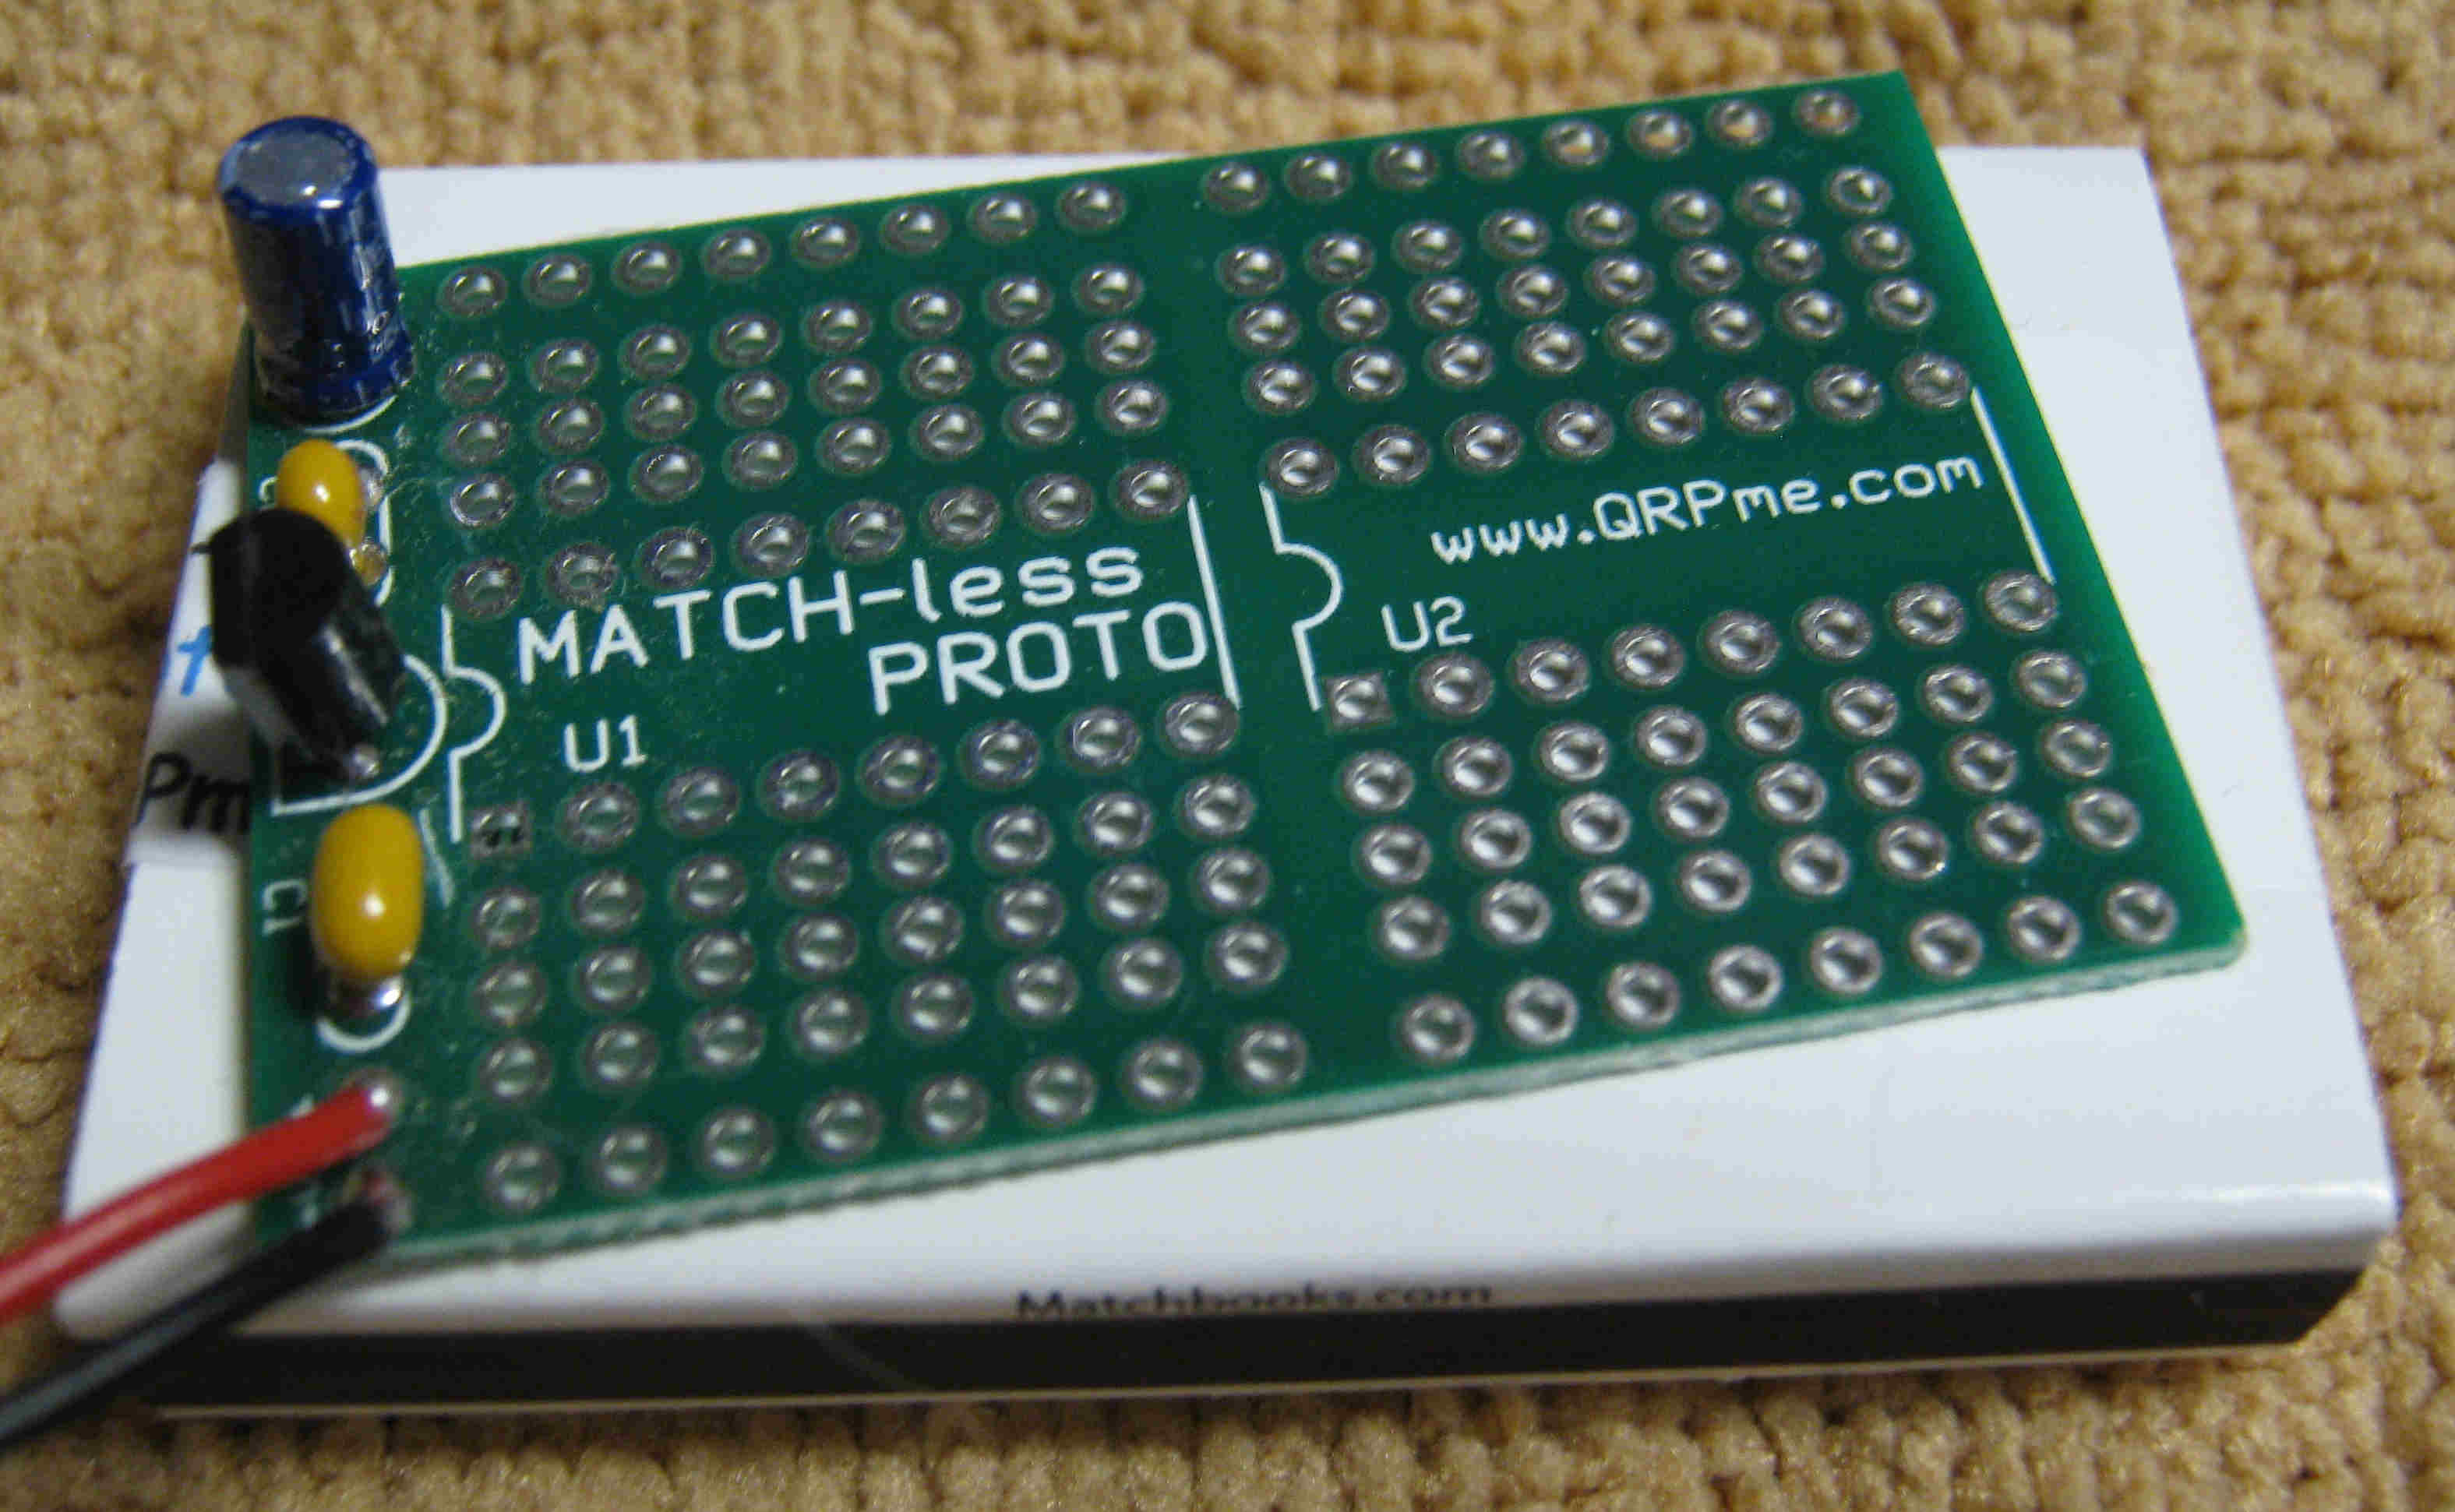 Picture of Match-less IC Proto